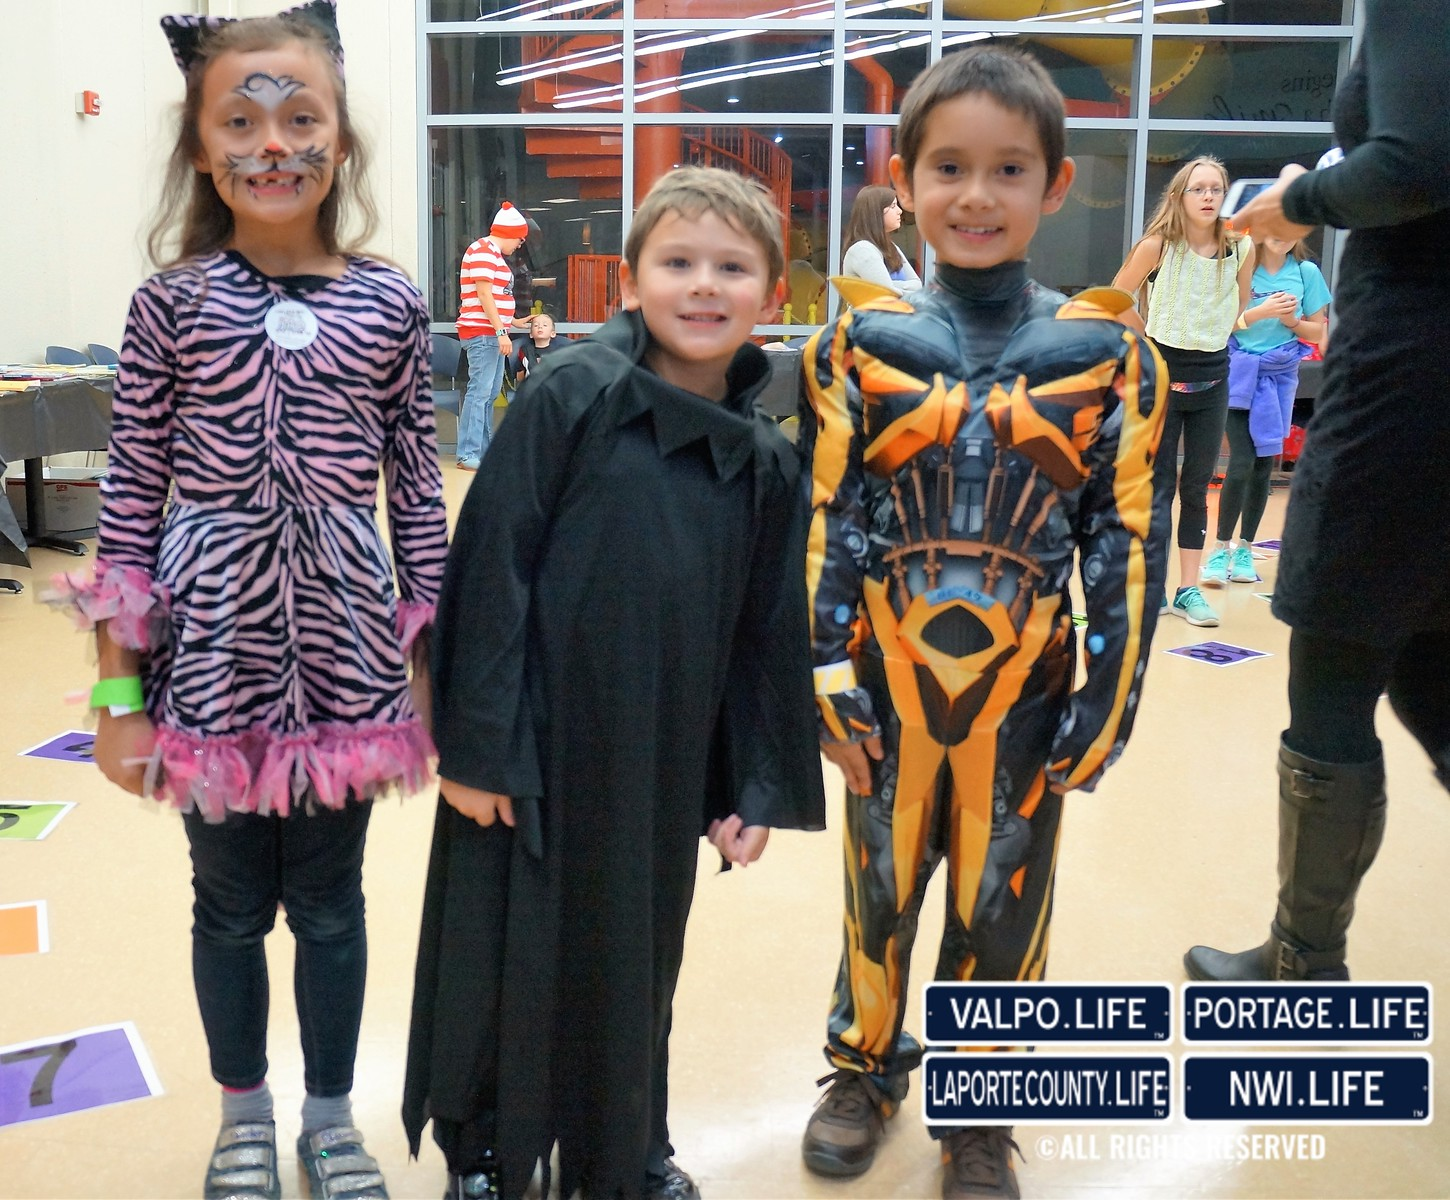 Halloween at the Valparaiso Family YMCA 2016